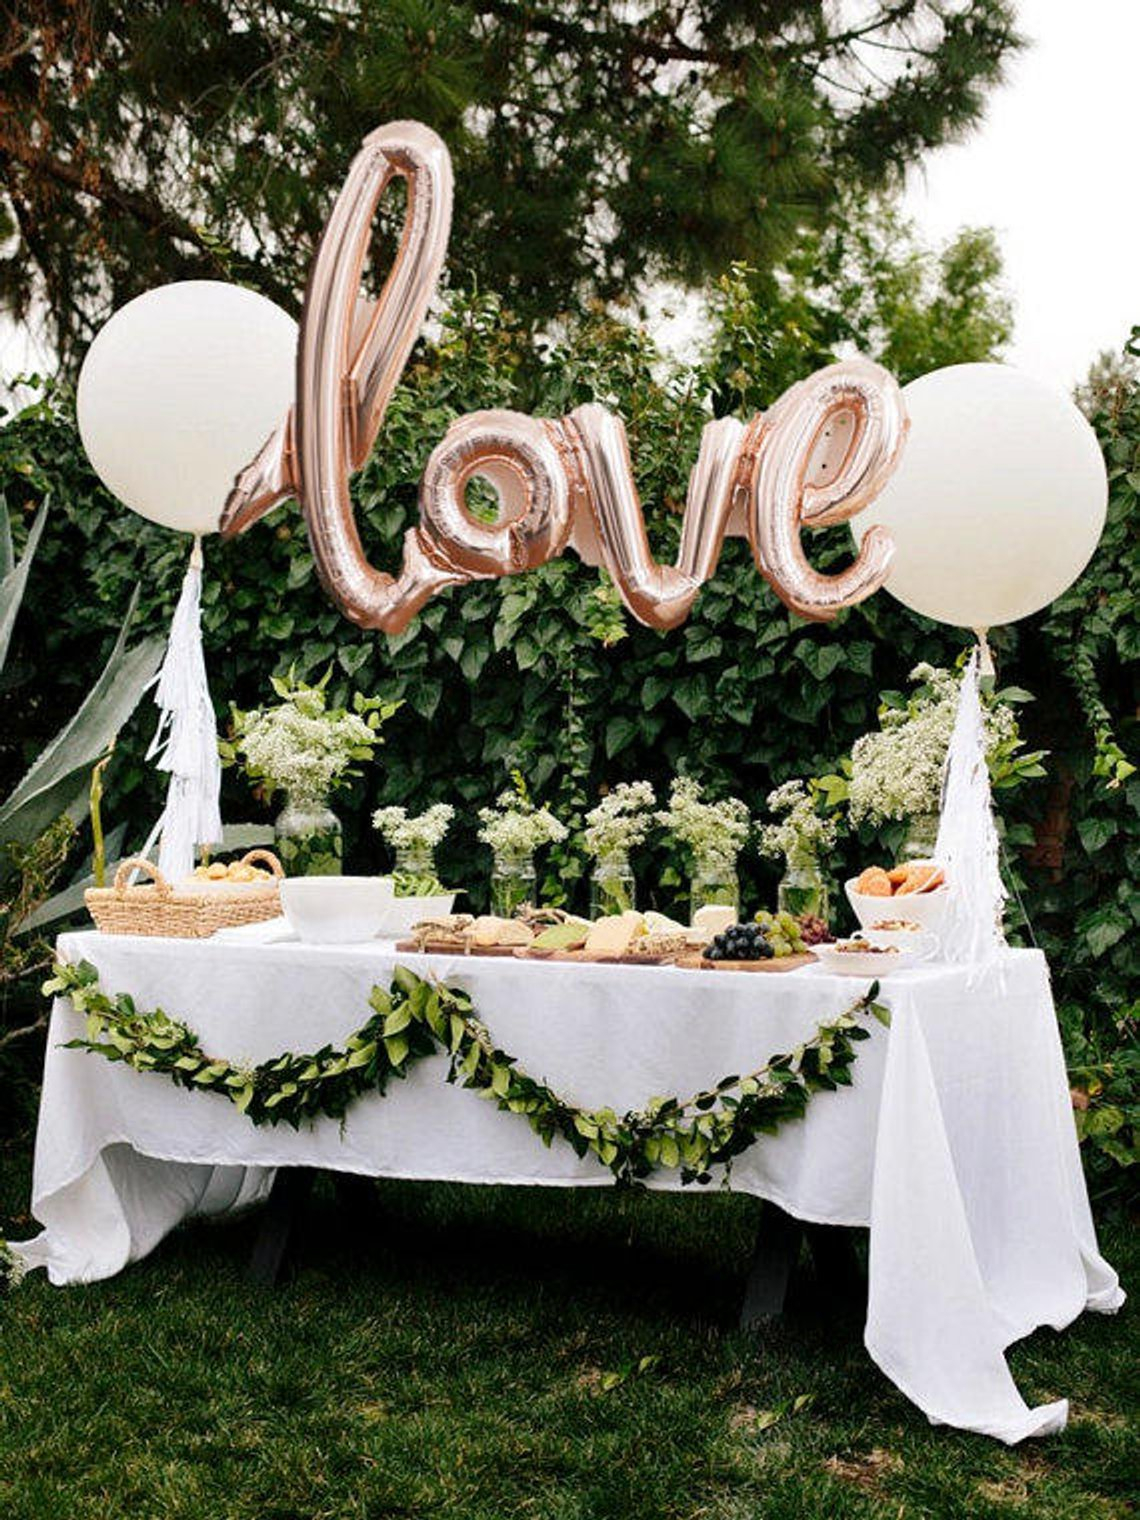 13 Engagement Party Ideas We Love A Practical Wedding pertaining to 13 Some of the Coolest Ways How to Upgrade Backyard Engagement Party Decorations